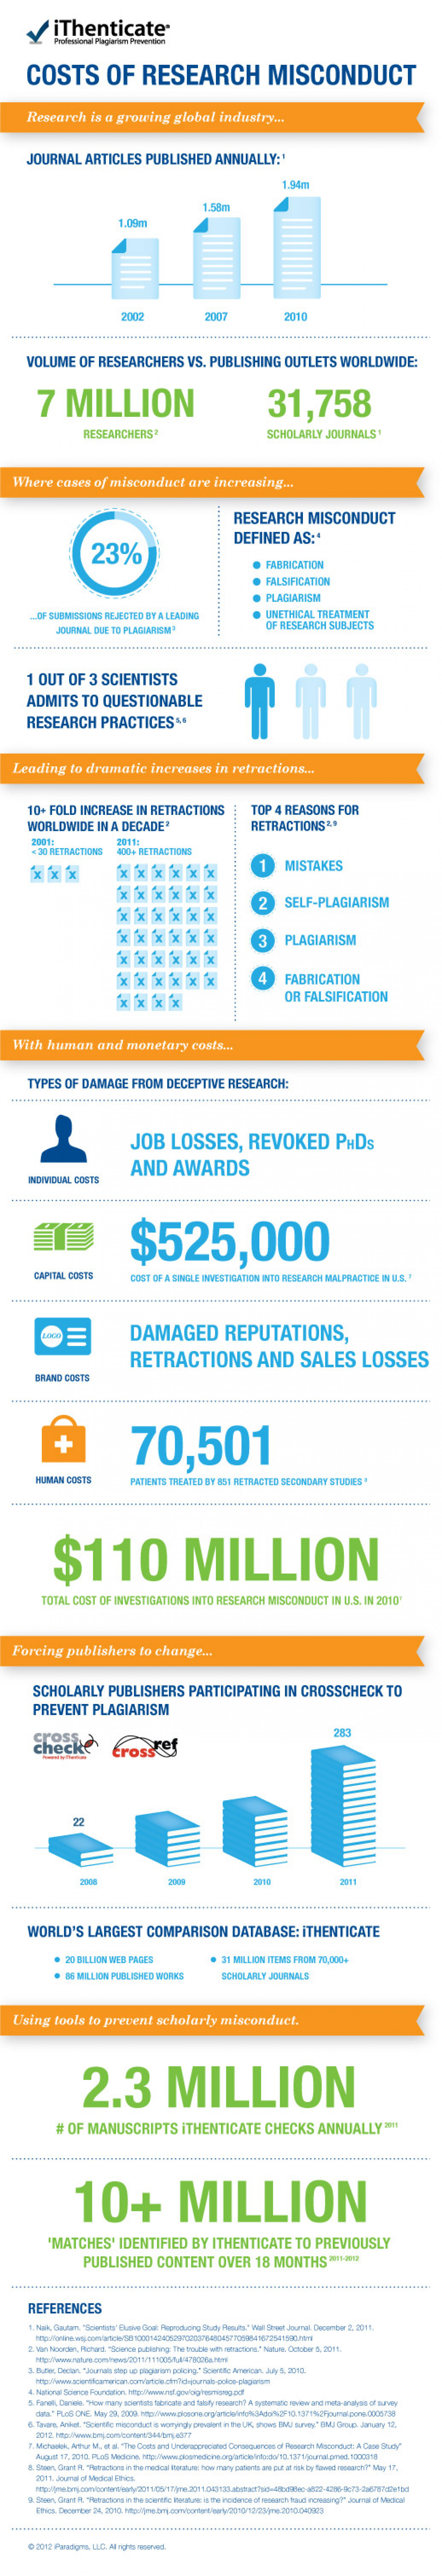 Costs of Research Misconduct Infographic